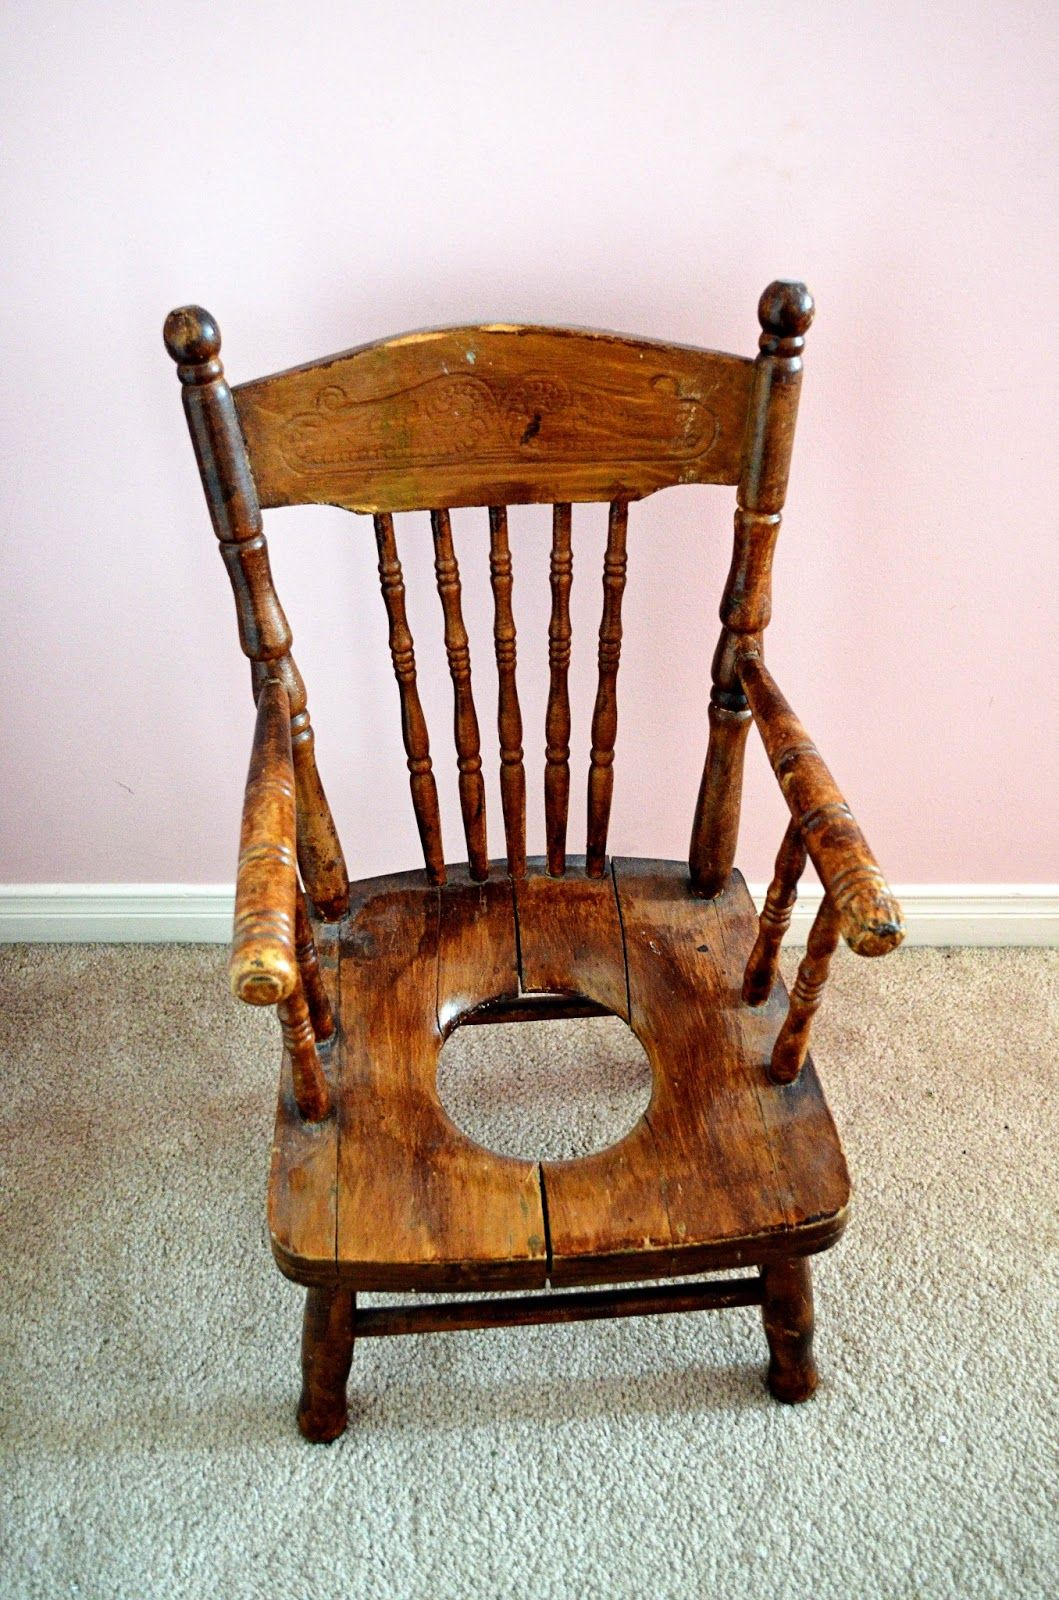 antique potty chair - Antique Potty Chair Country Living Pinterest Antique Chairs